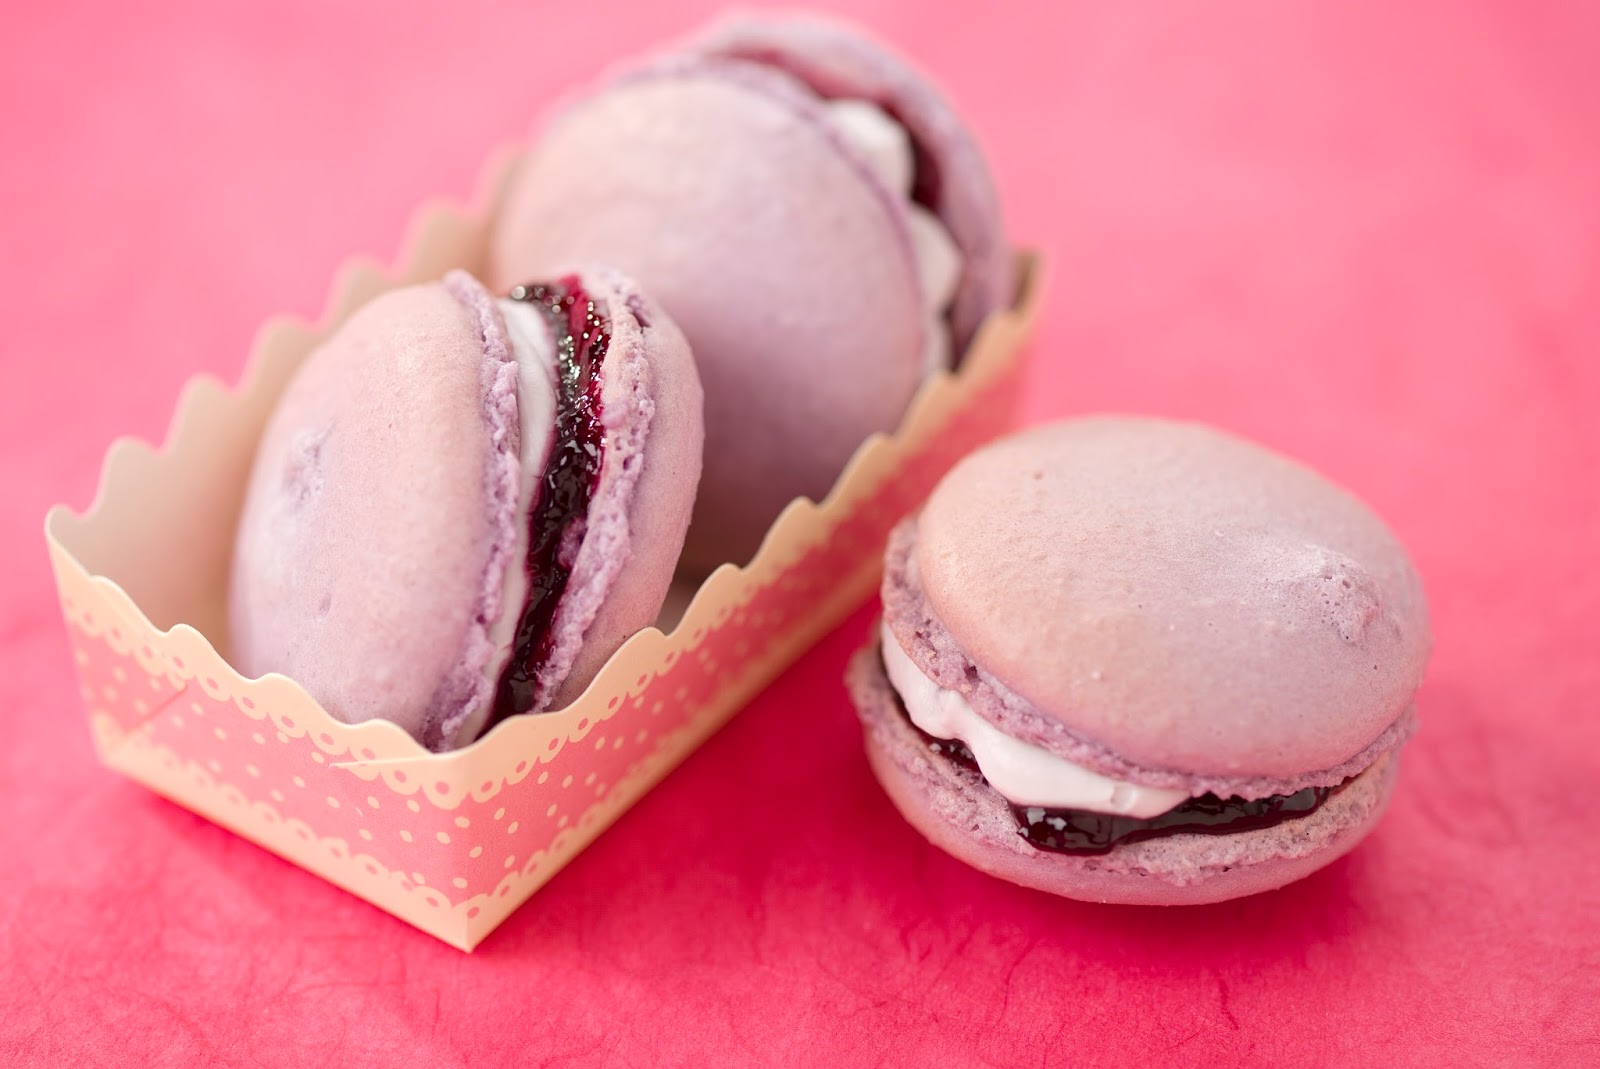 Blueberry Macaroons Recipe.. | ¡ Wasn't Expecting That